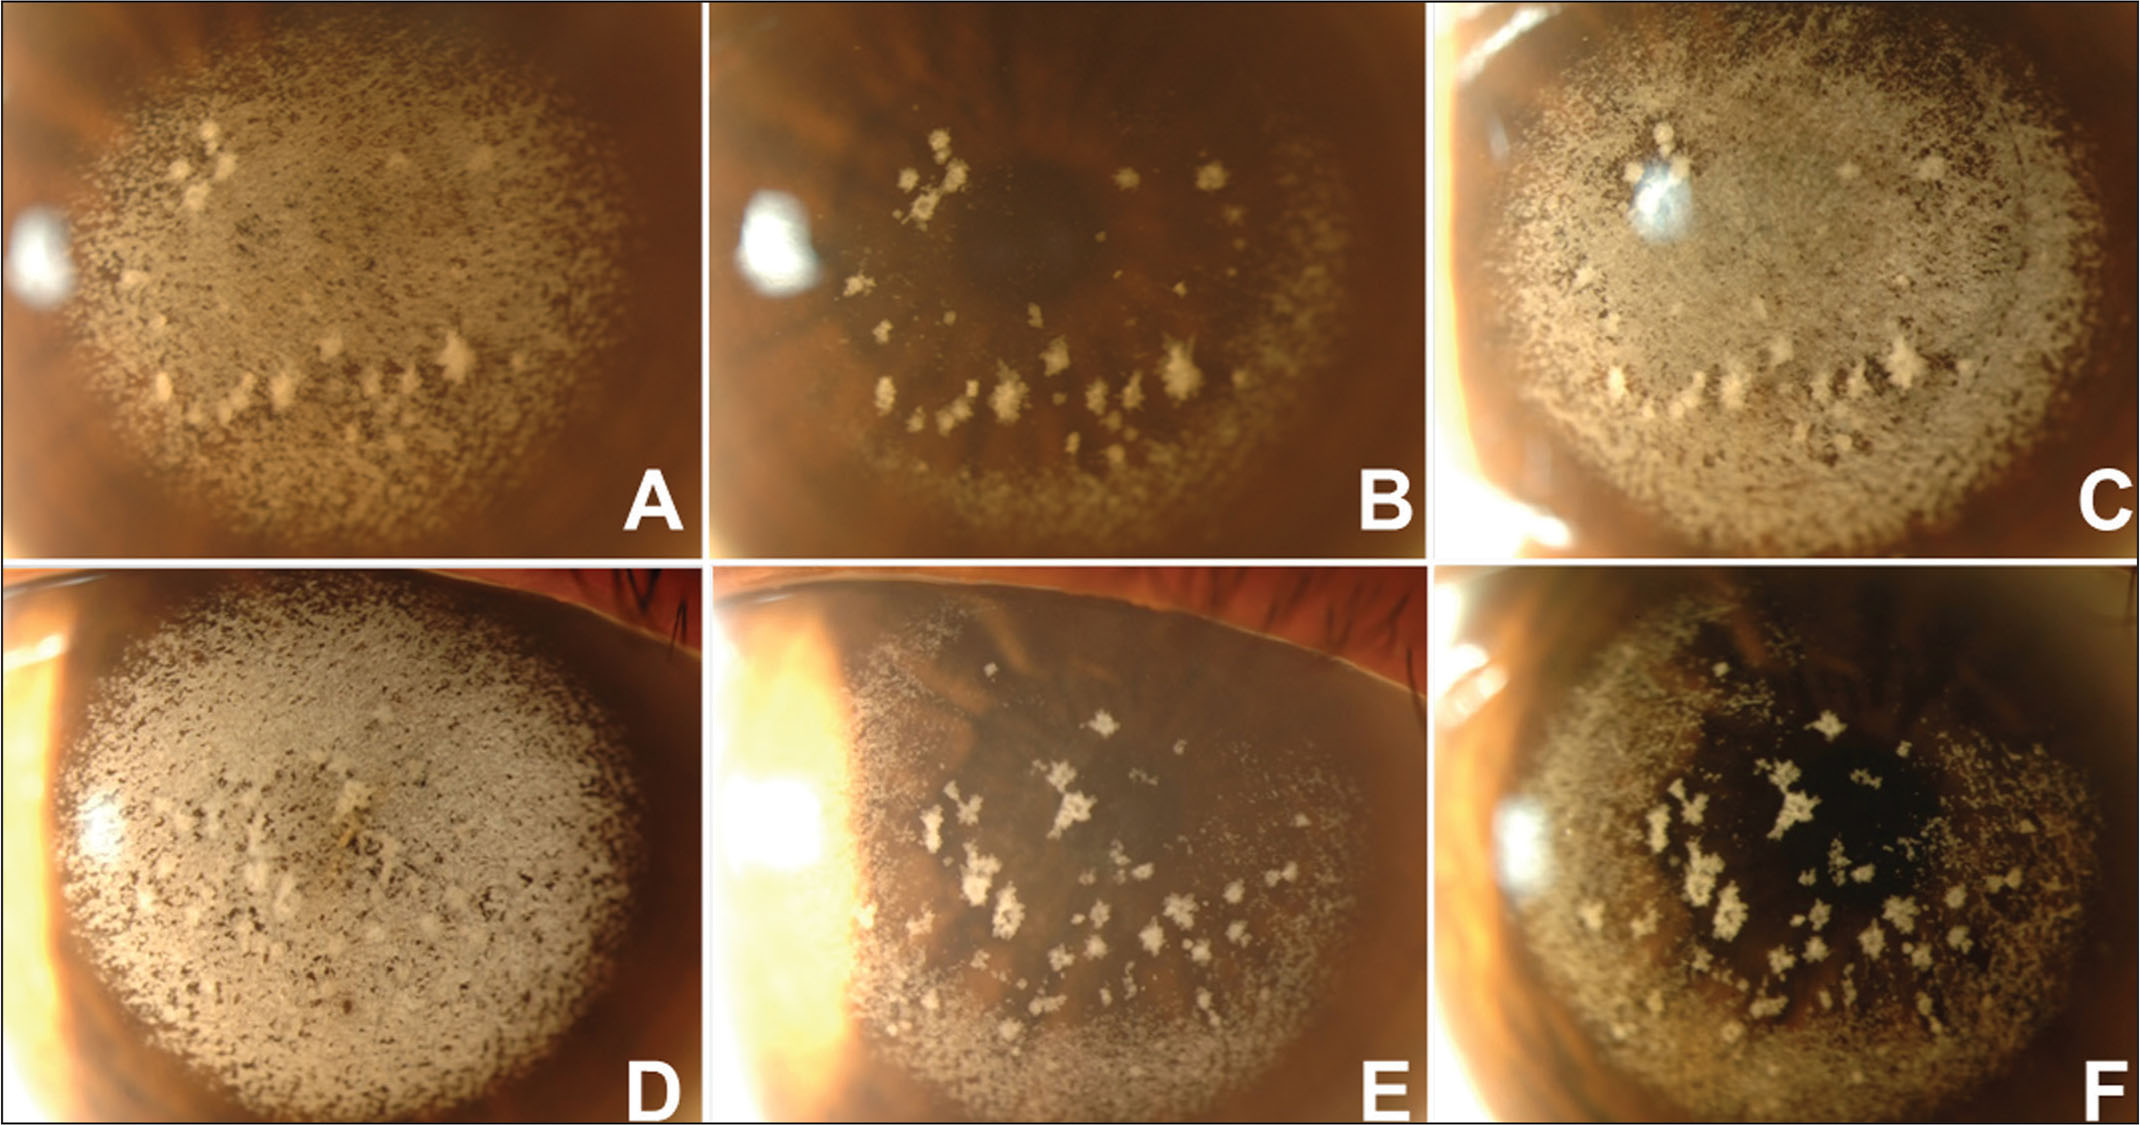 Slit-lamp photographs revealing recurrence after phototherapeutic keratectomy (PTK) in the eye receiving flap conservation. (A) Left eye of a patient with granular corneal dystrophy type 2 exacerbated after LASIK before PTK. (B) Left eye of the same patient 10 days after PTK with flap conservation. (C) Left eye of the same patient with significant recurrence 46 months after PTK. (D) Right eye of the same patient before PTK. (E) Right eye of the same patient 10 days after PTK with flap removal. (F) Right eye of the same patient with no recurrence 36 months after PTK.